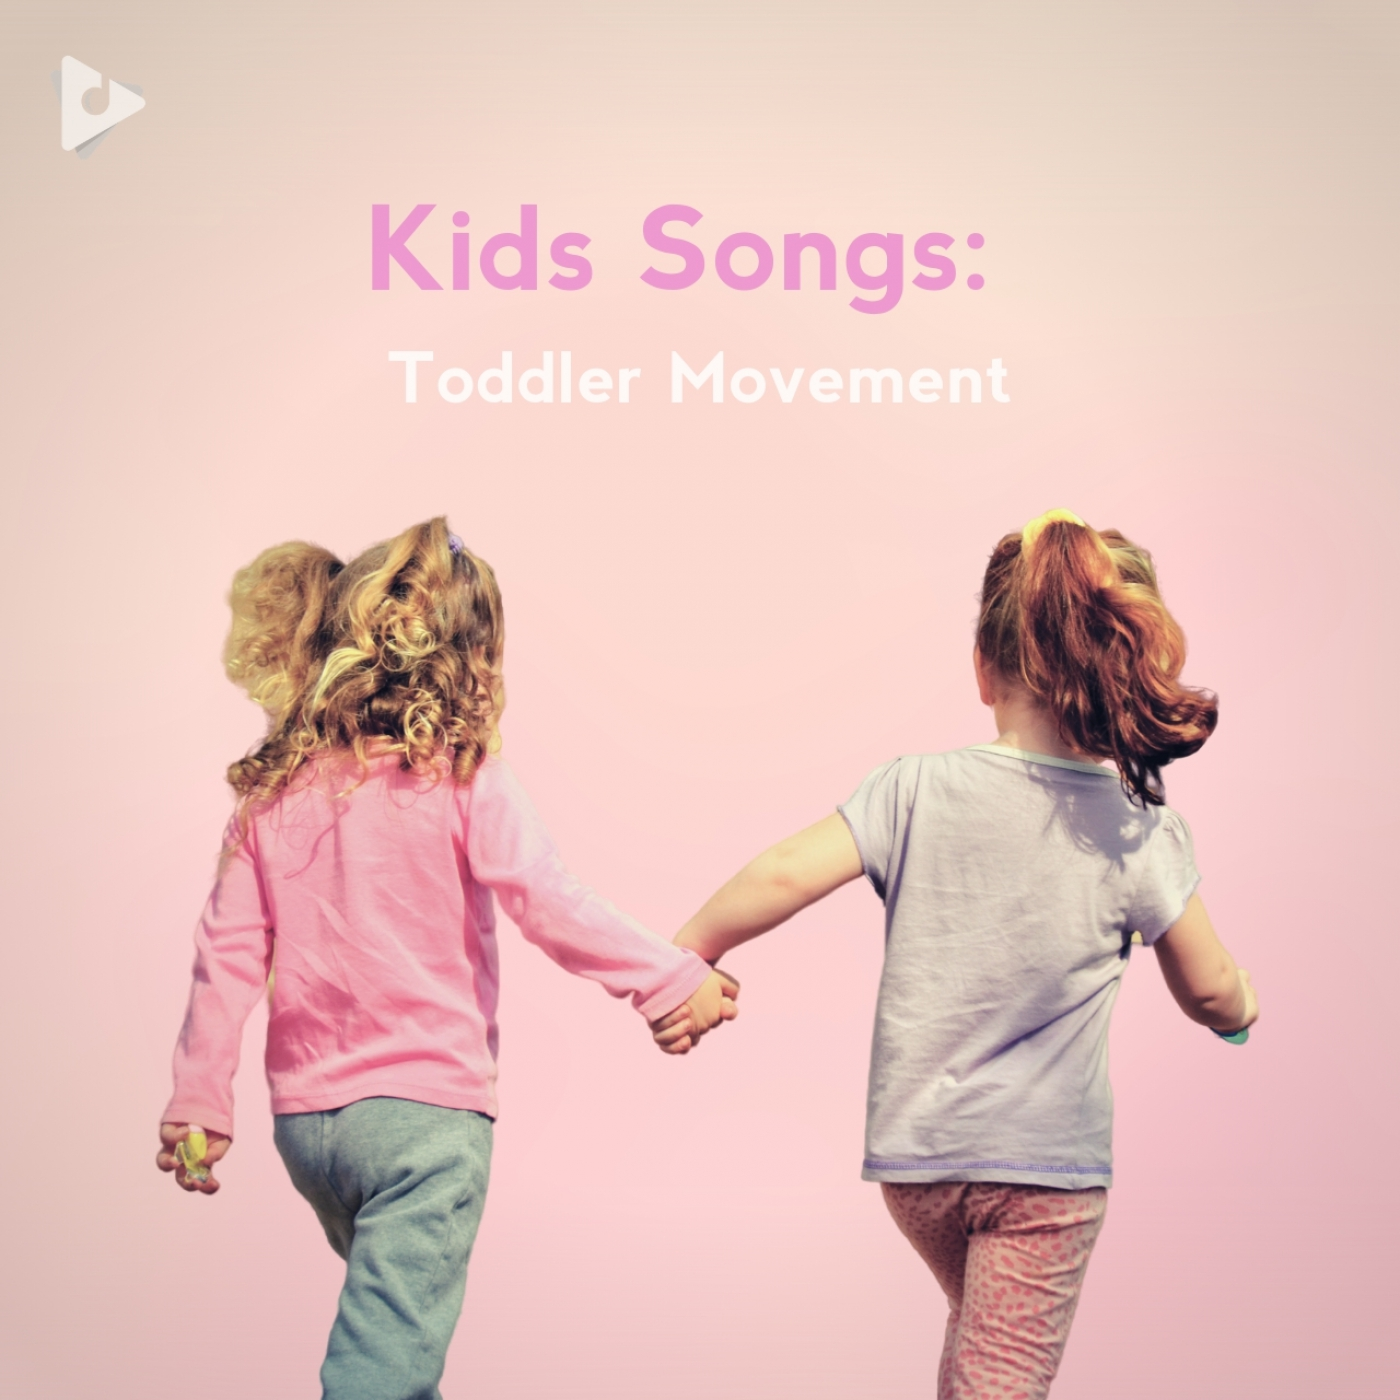 Kids Songs: Toddler Movement